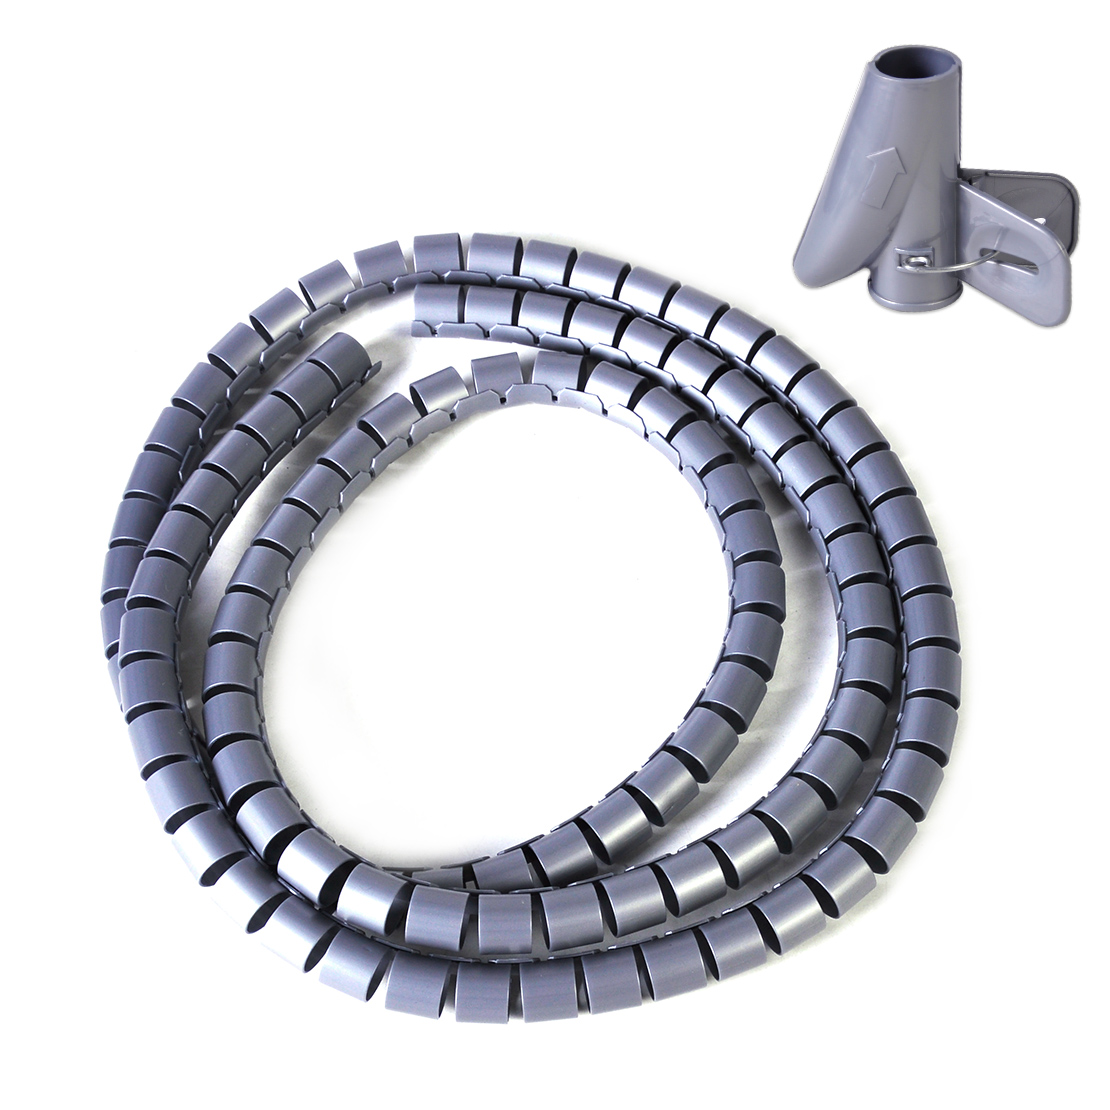 1.5M Spiral Cable Wrap Banding Loom Wire Tube Tidy Management ...